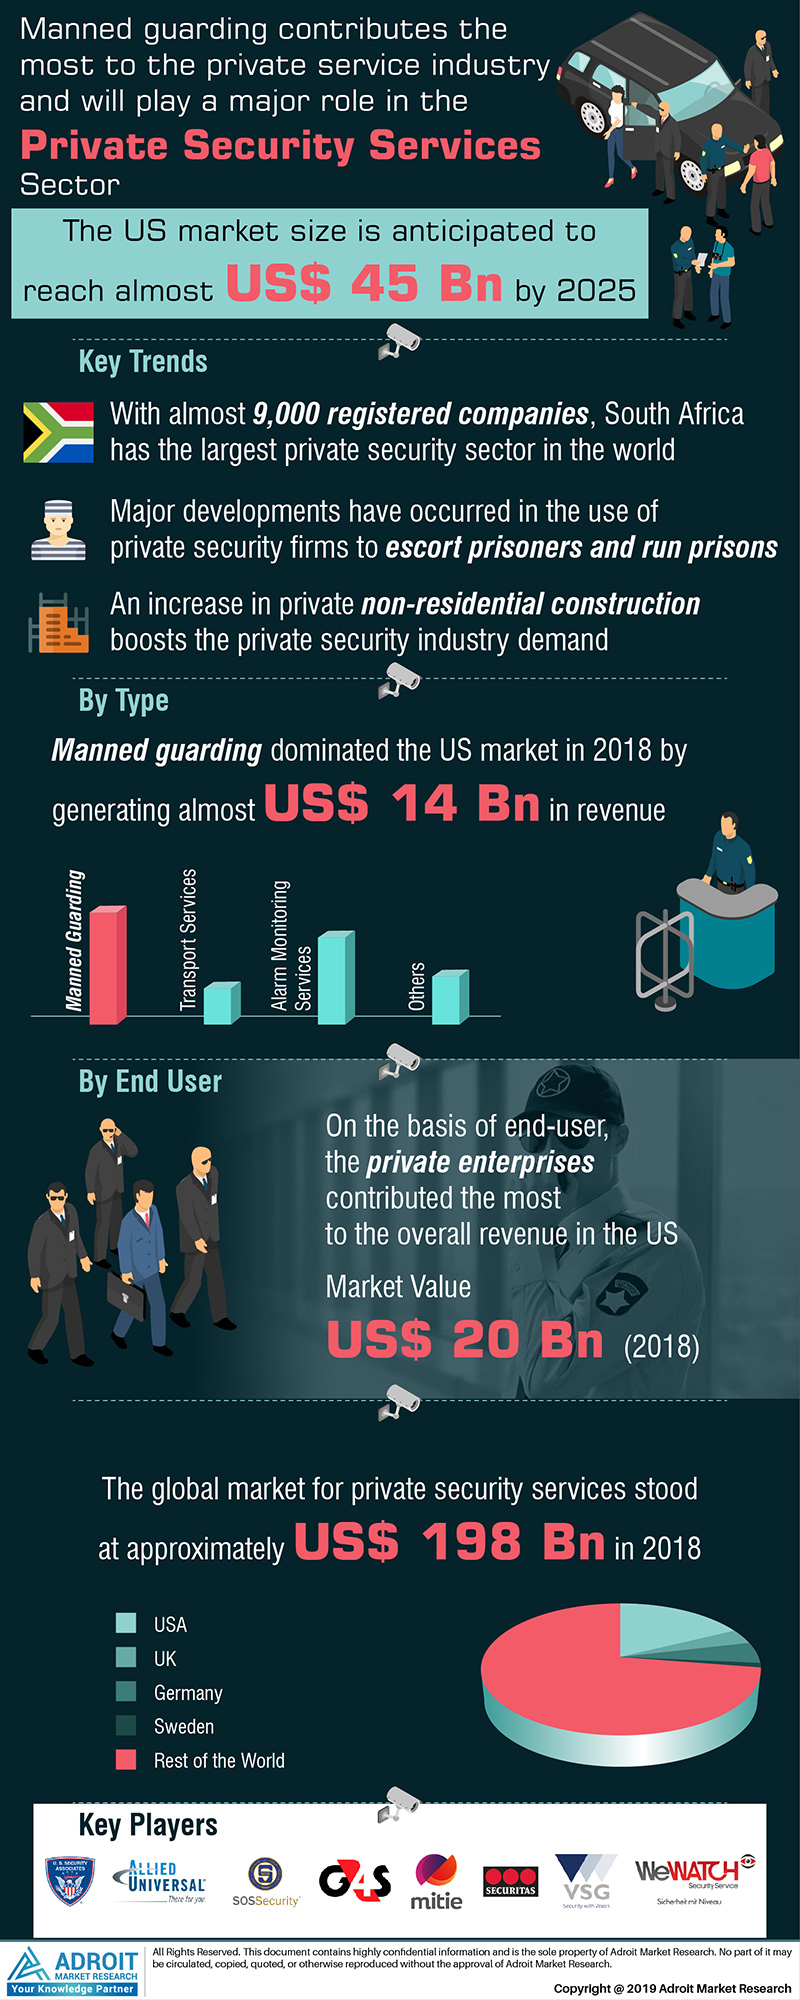 Global Private Contract Security Services Market Size 2018 By Type, End-user, Region and Forecast 2019 to 2025